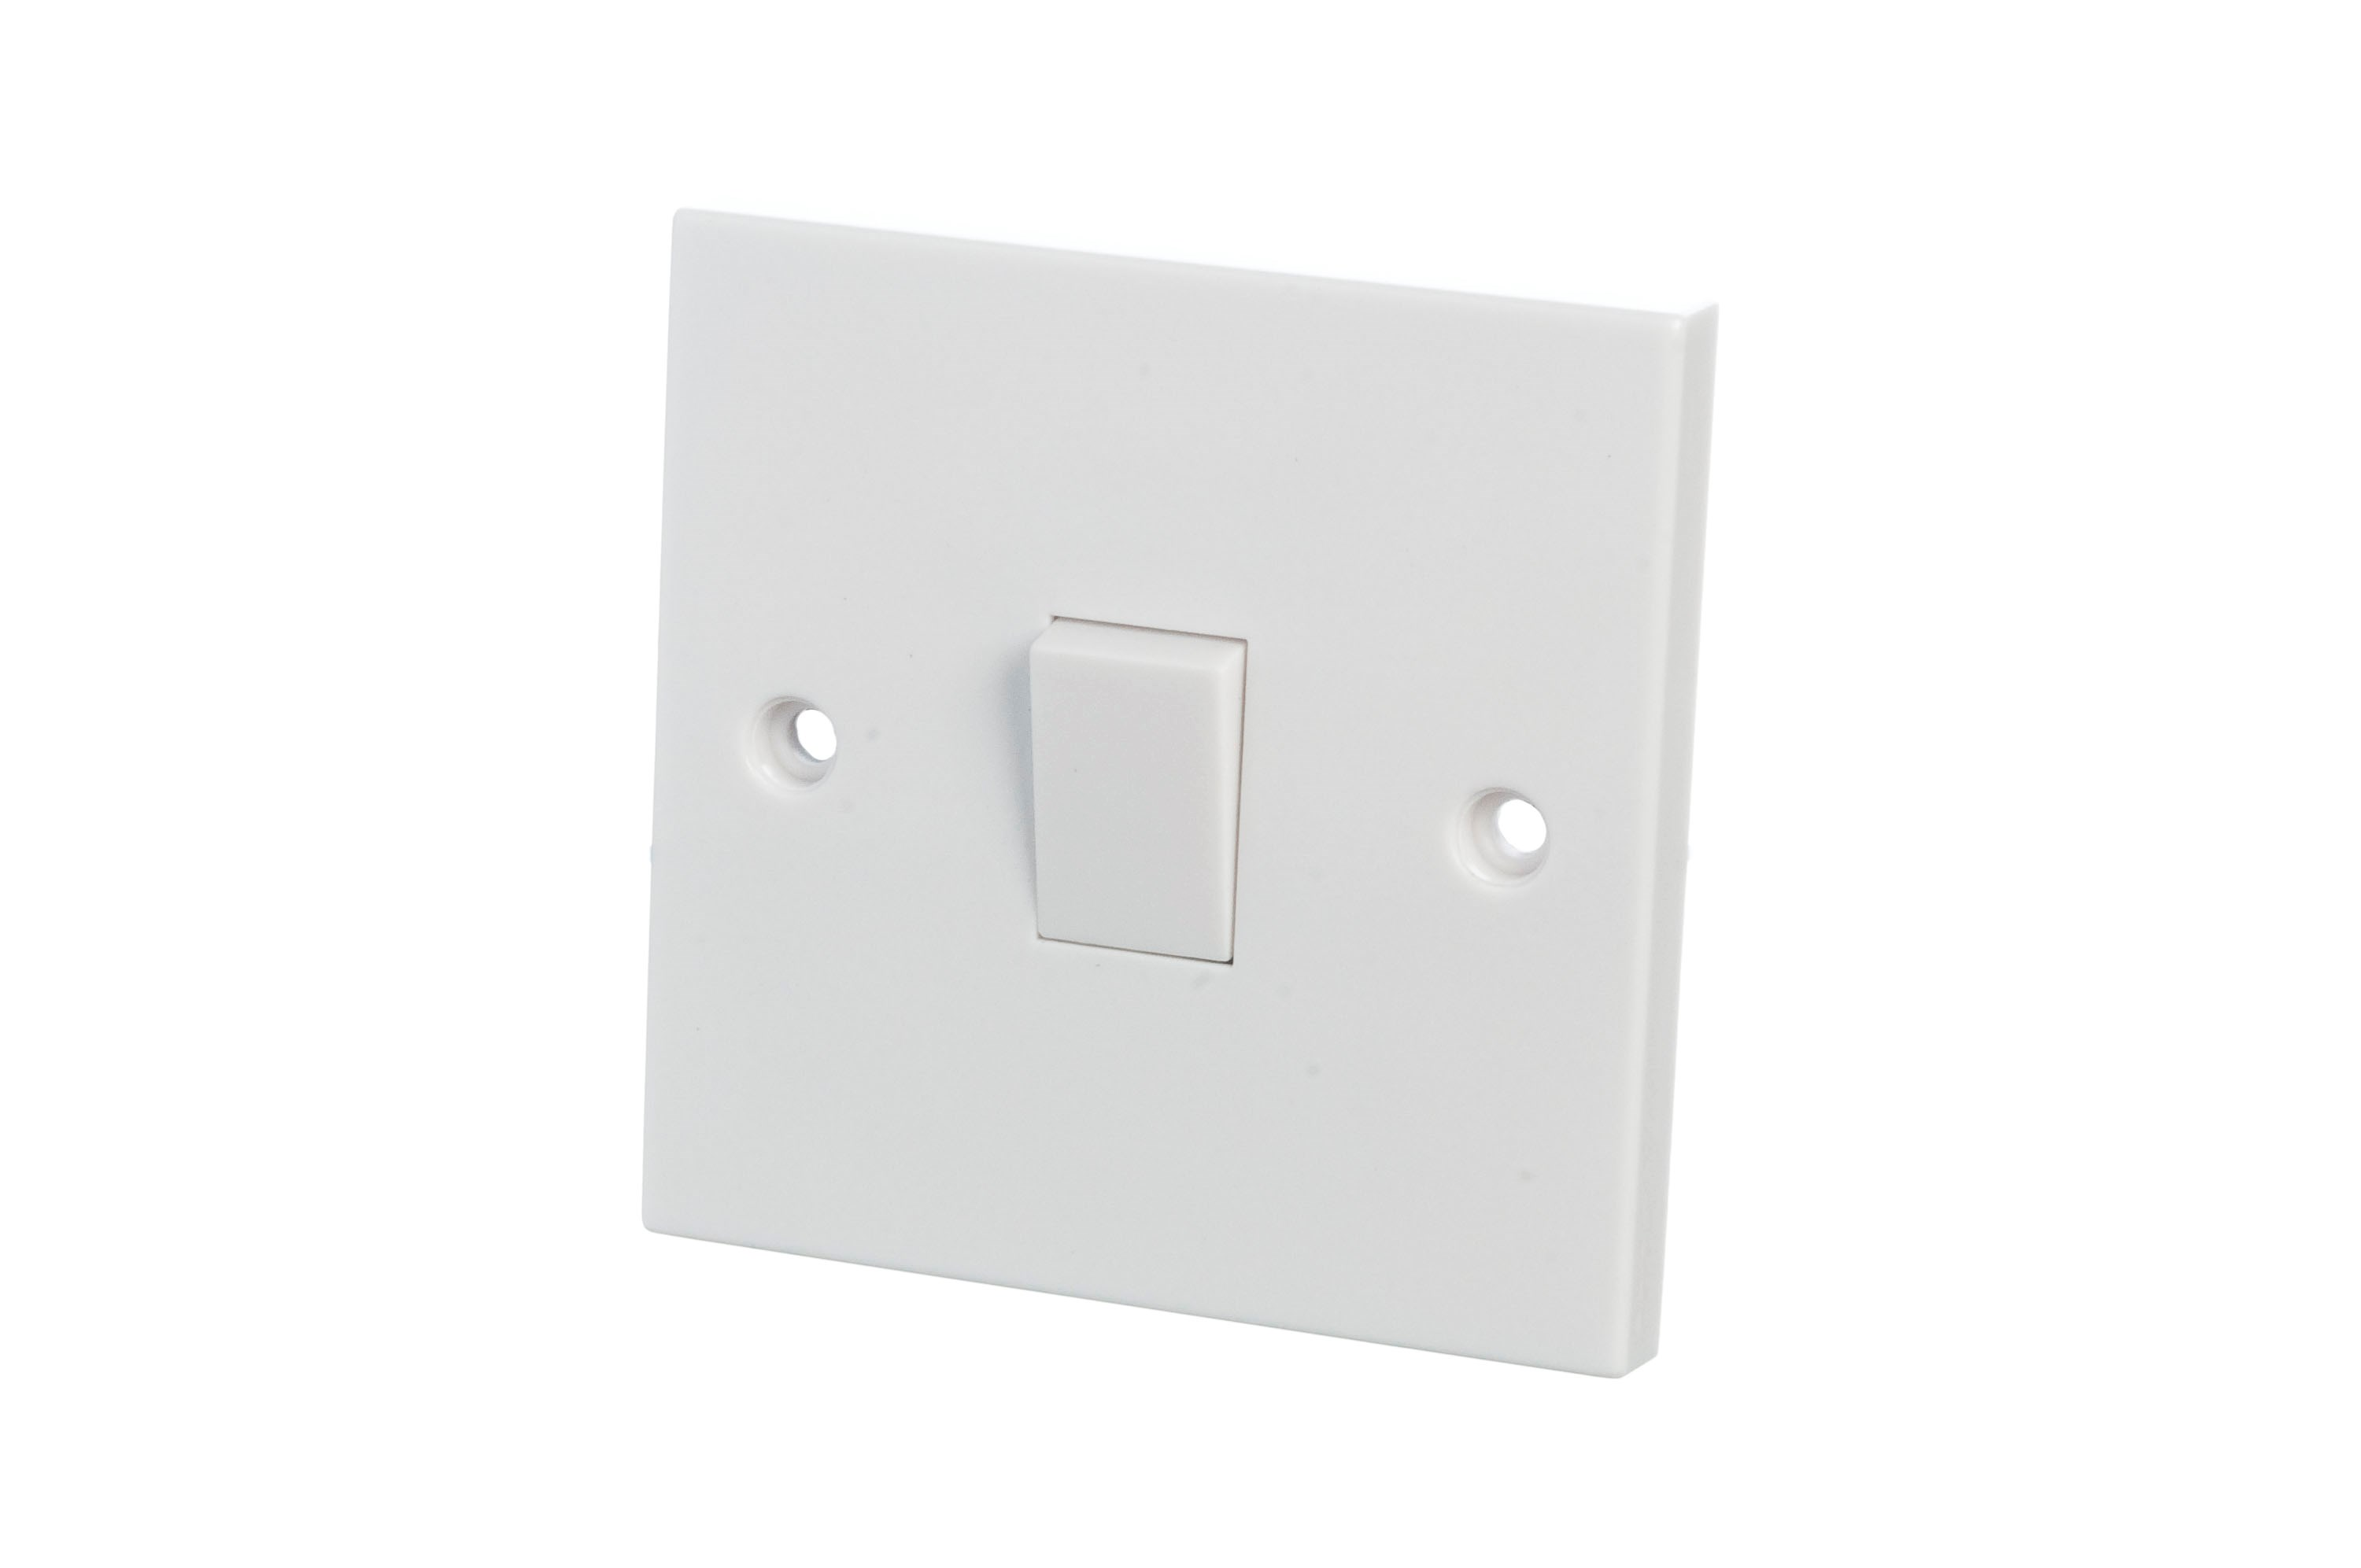 powermaster 1 way switch - 6 amp 1 gang | switches & sockets, Wiring diagram